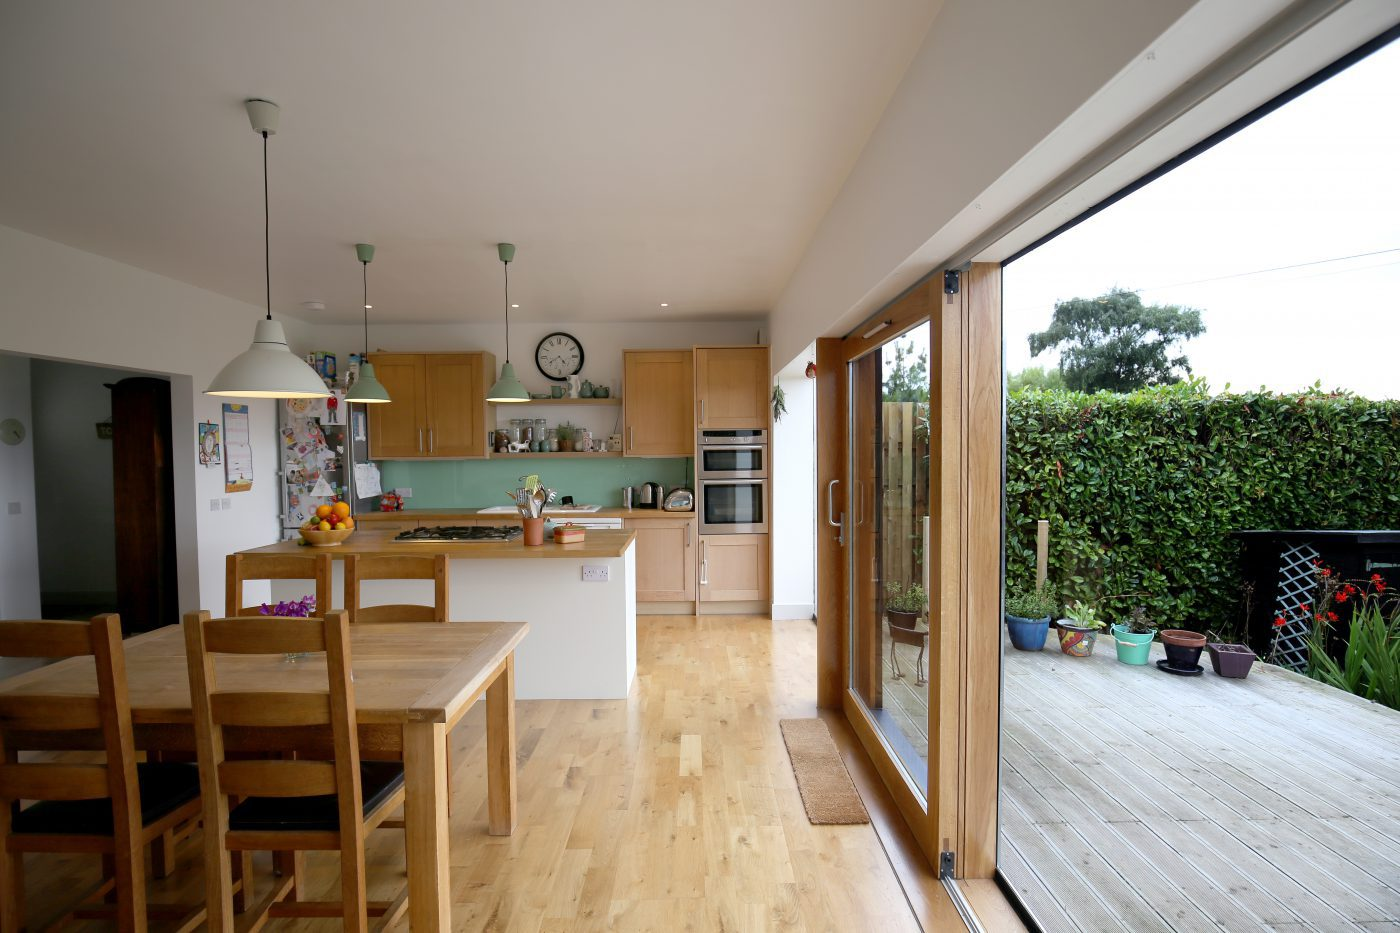 Coillesdene Bungalow photography